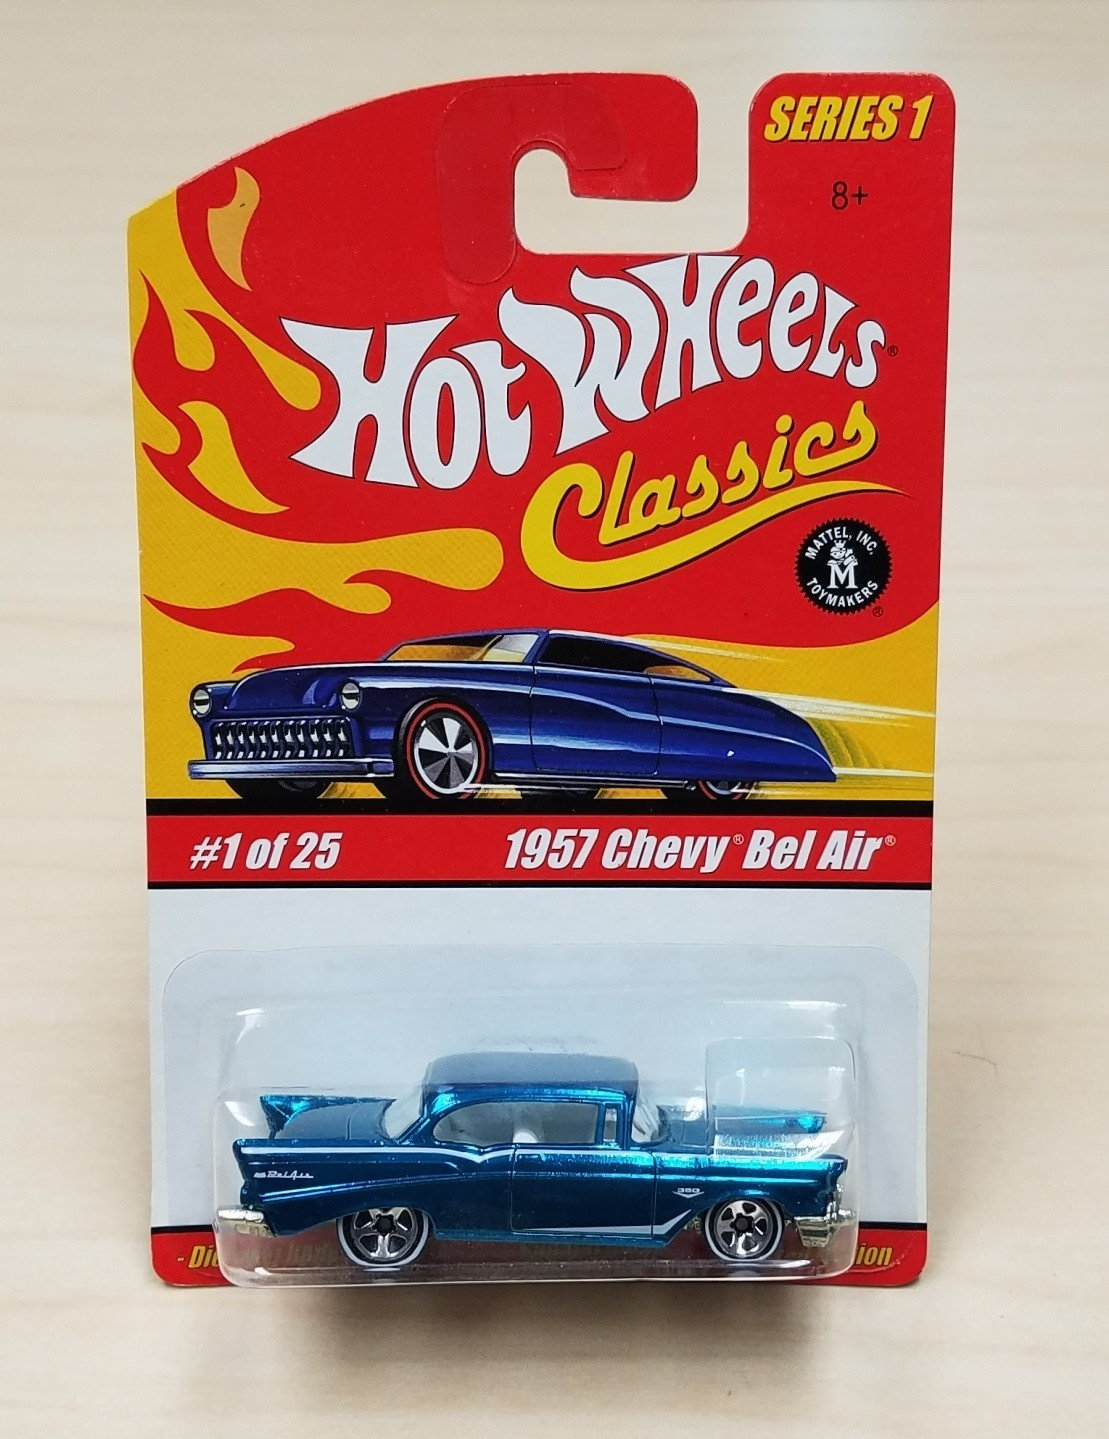 Hot Wheels Classics Series 1 1957 Chevy Bel Air Turquoise 1 of 25